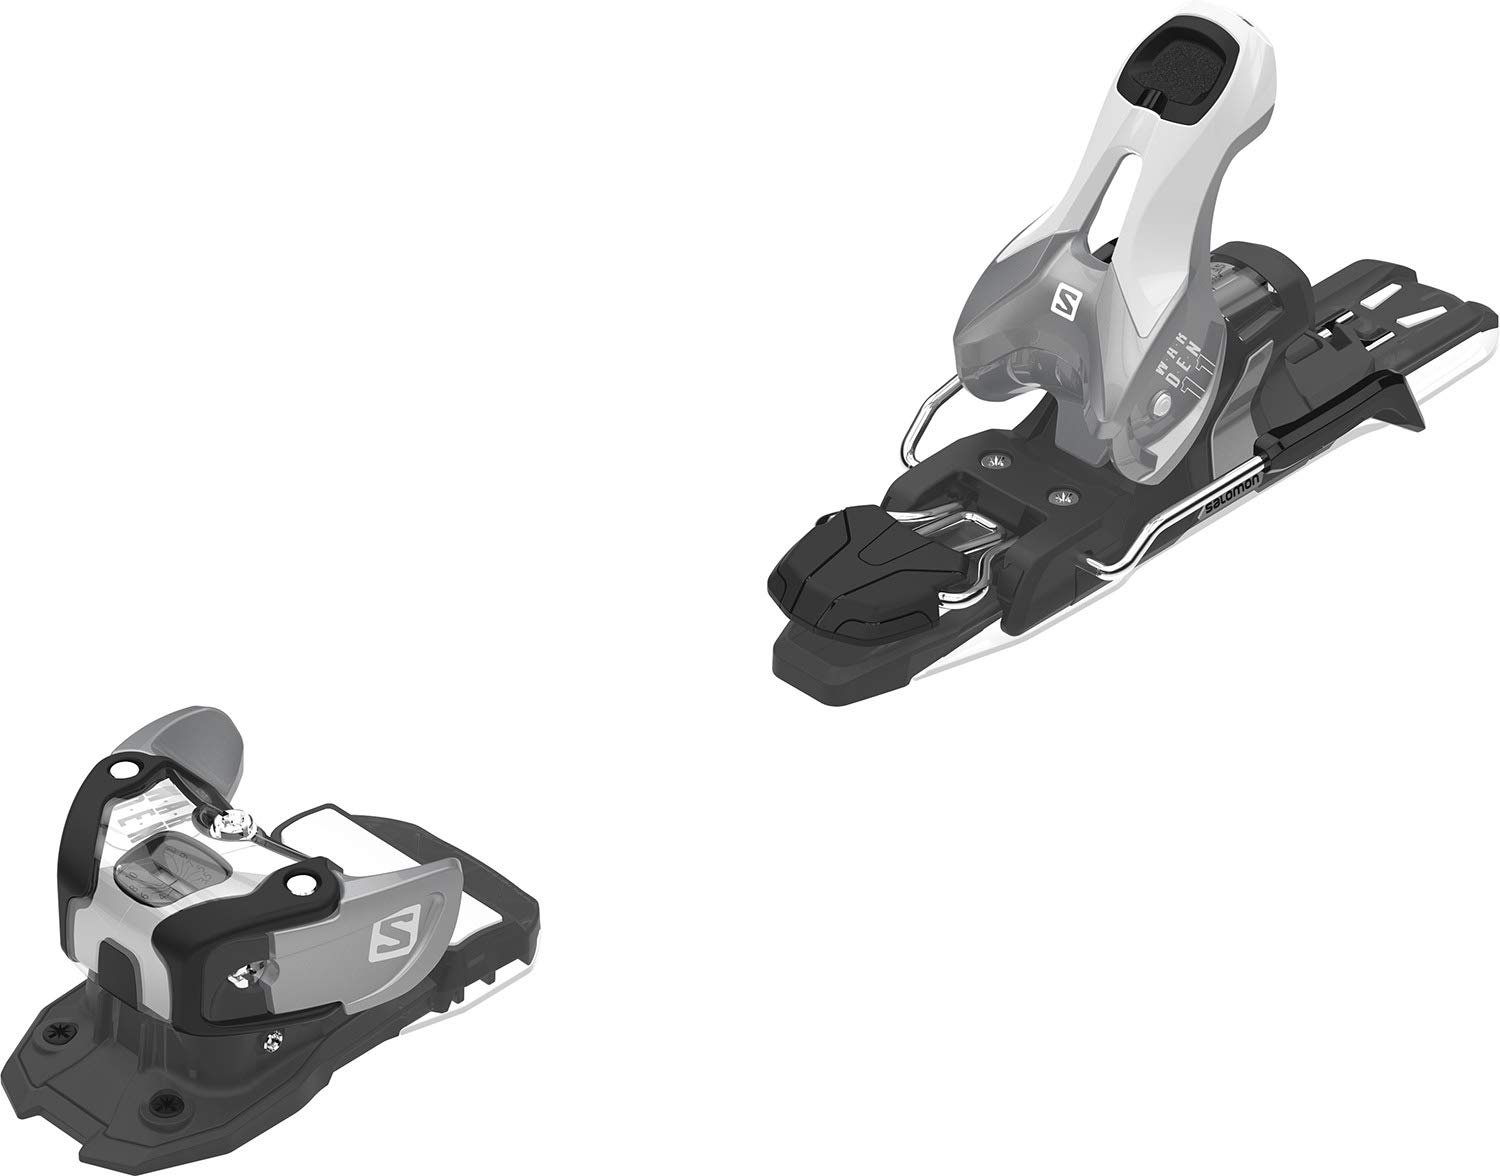 Top 10 Best Ski Bindings Reviews For All Mountains 2021 1